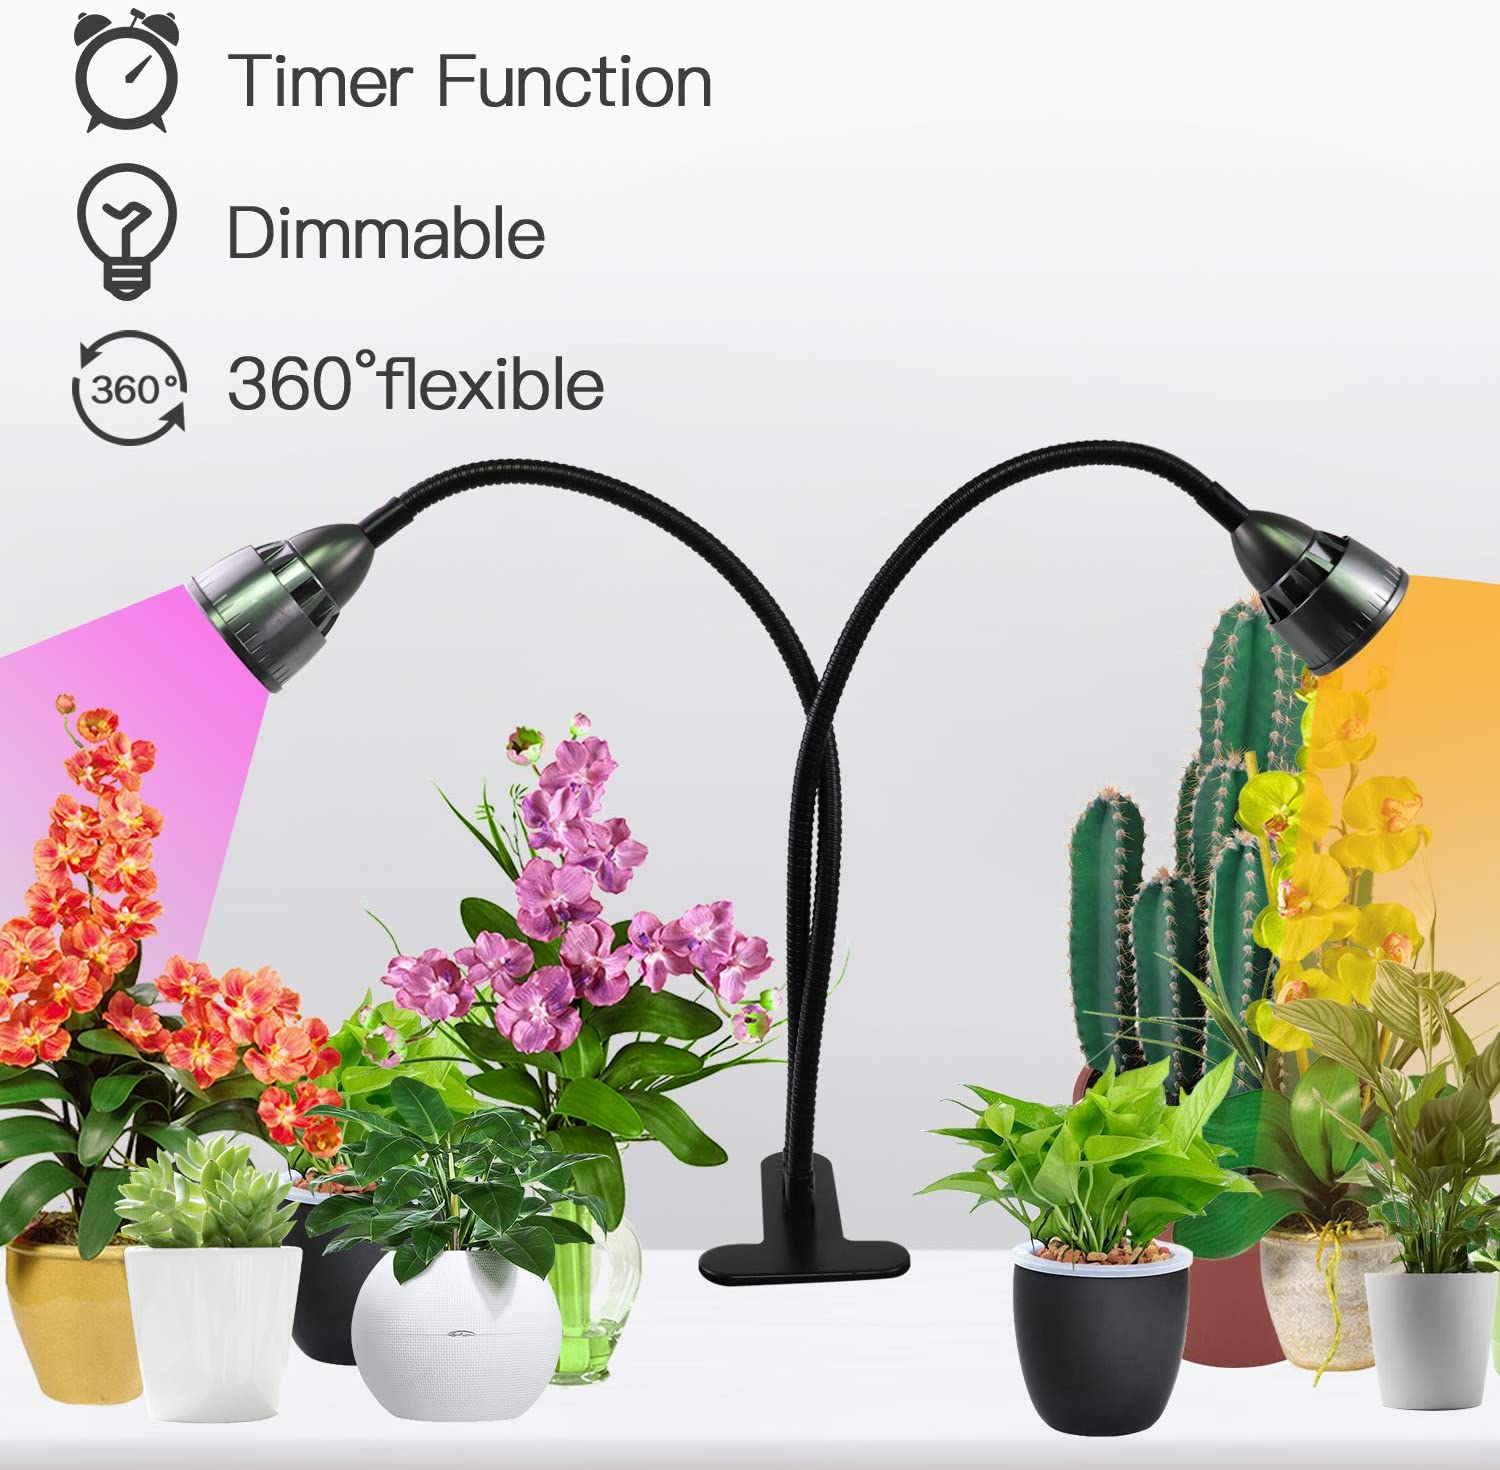 LED Grow Lights for Indoor Plants,360° Gooseneck Dual Head Clip-on Plant Lights for Seedlings Succulents Micro-Greens,Timer Function (3 Modes & 10-Level Brightness)